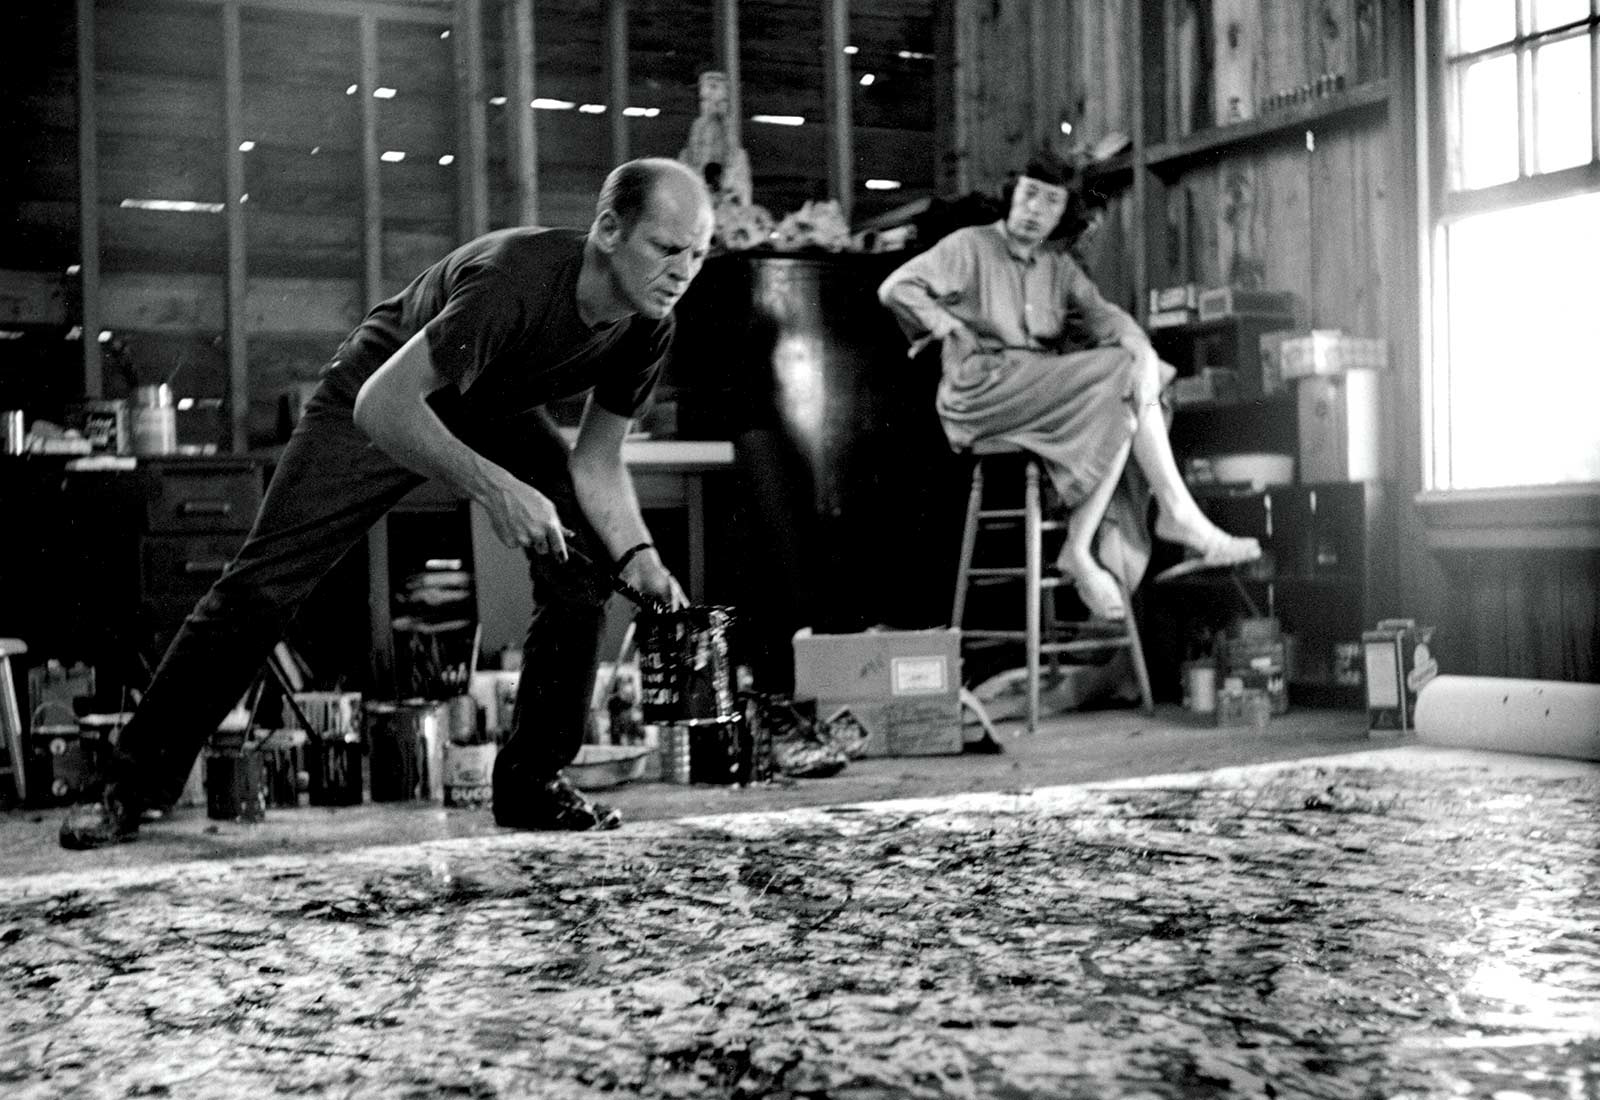 Hans Namuth, Jackson Pollock and Lee Krasner, 1950, gelatin silver print, sheet: 11 x 10 3/4 inches (28 x 27.3 cm) © Hans Namuth Estate, Center for Creative Photography